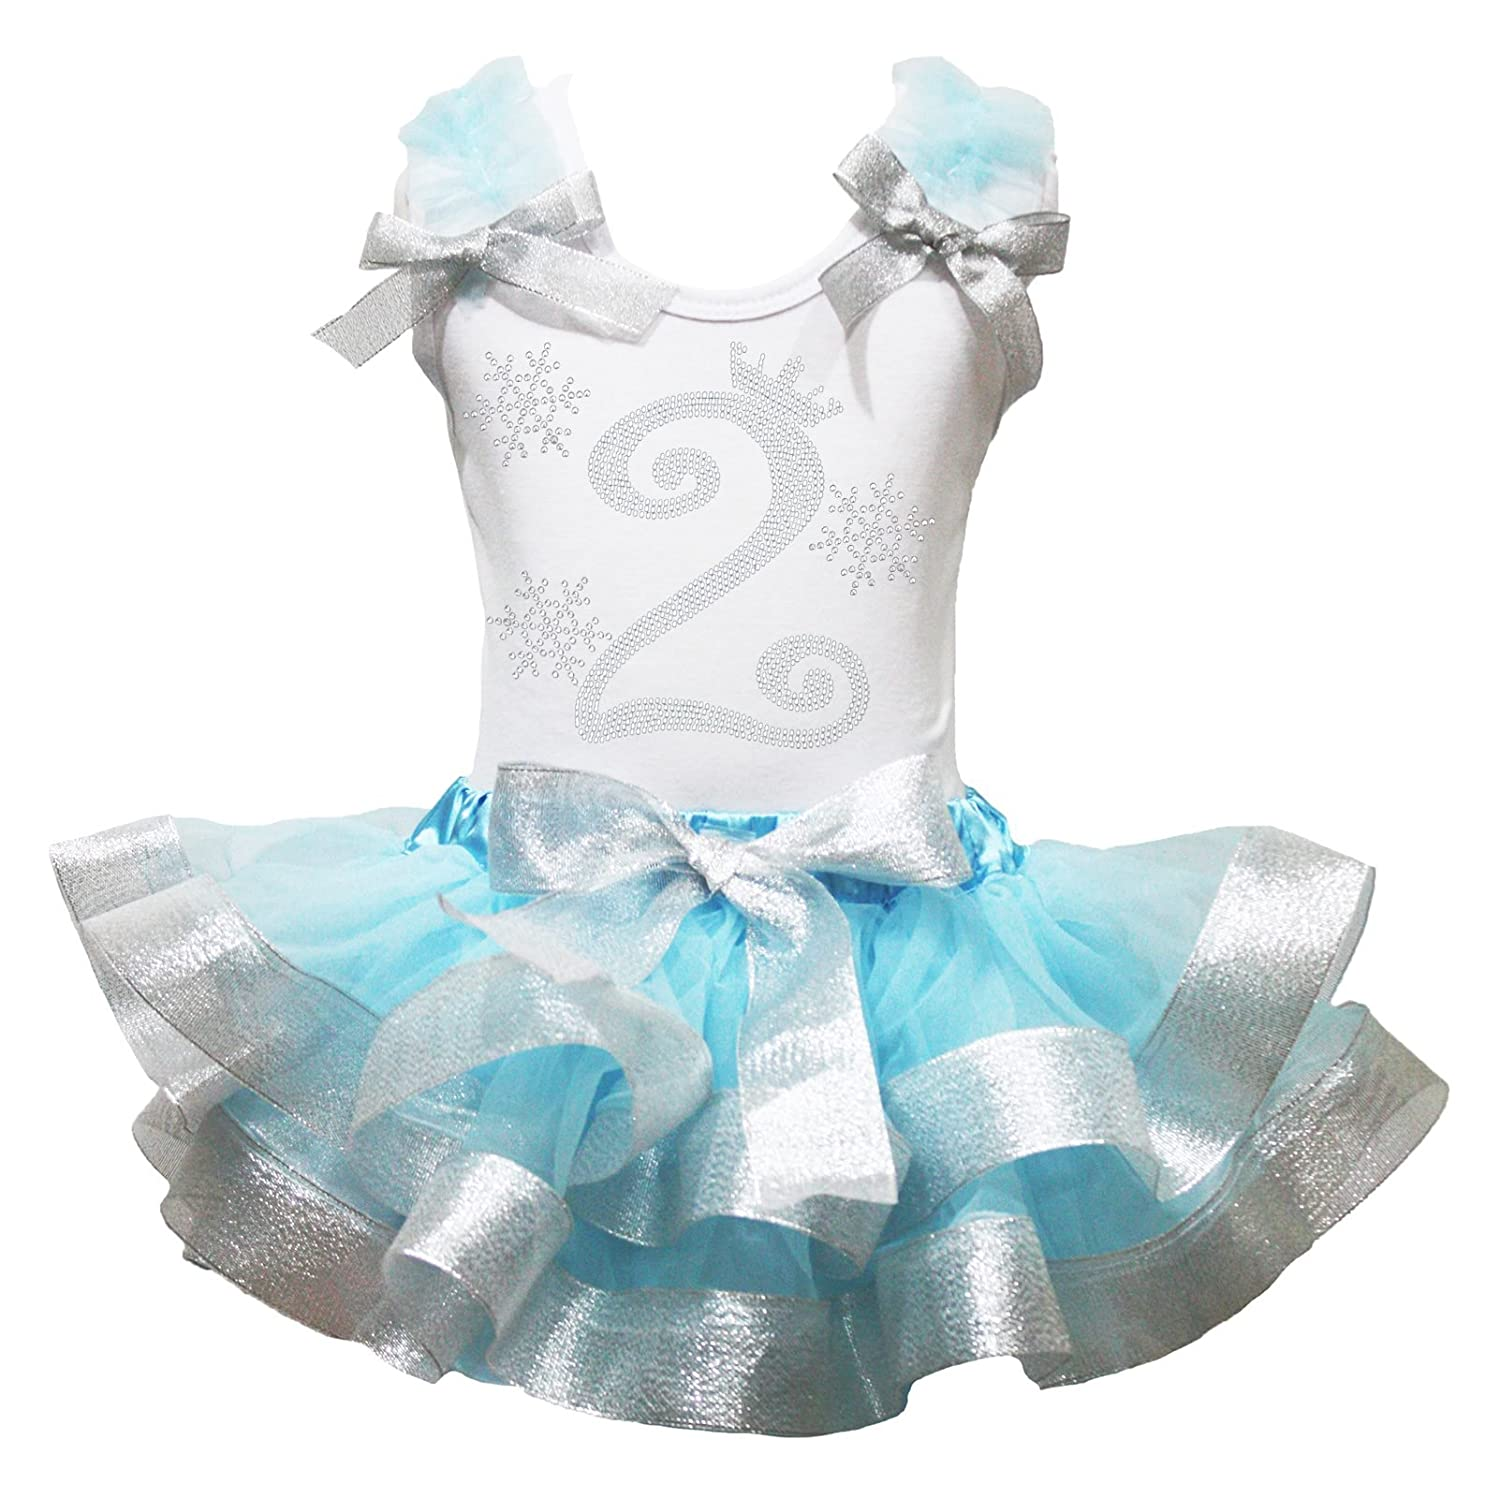 2nd Snowflake Dress White Shirt Silver Trim Blue Petal Skirt Girl Outfit 1-8y